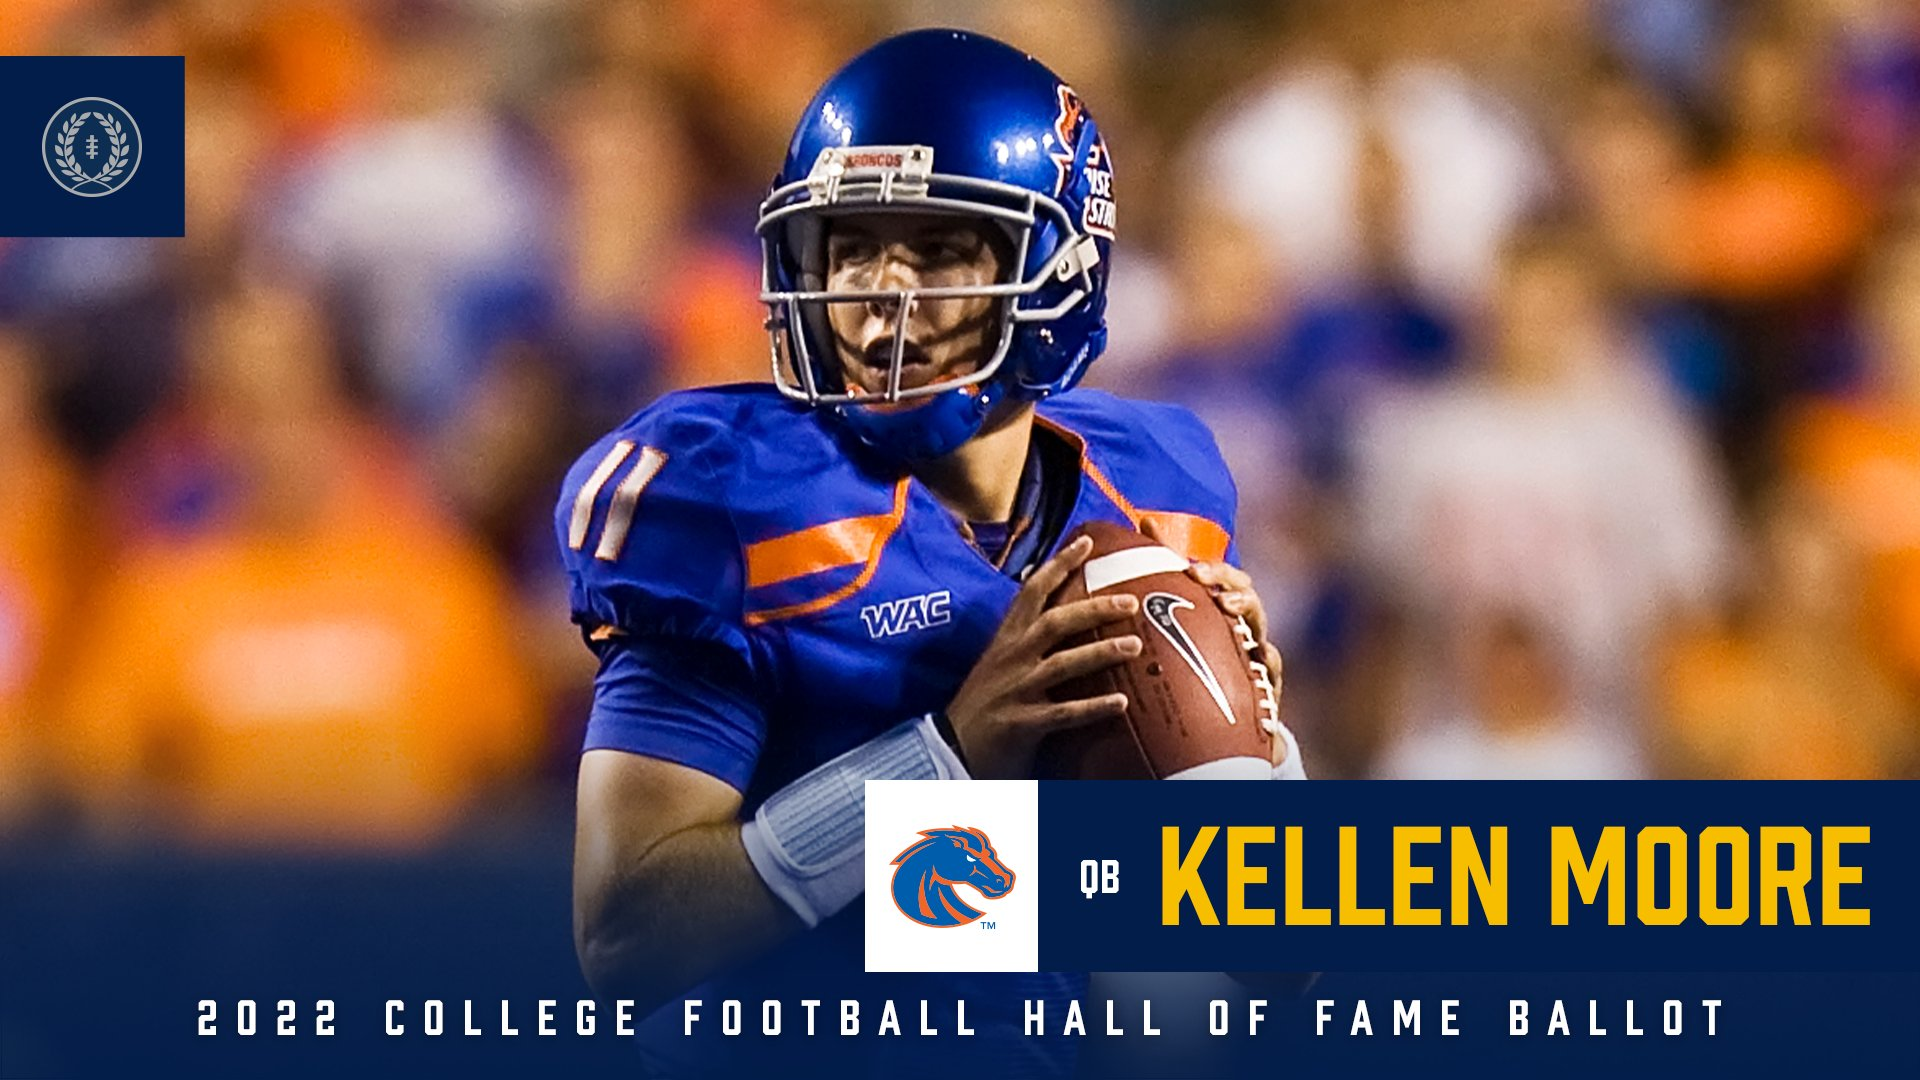 BOISE STATE: COLLEGE FB HALL OF FAME SPECIALIST ON WHAT'S NEXT FOR KELLEN MOORE